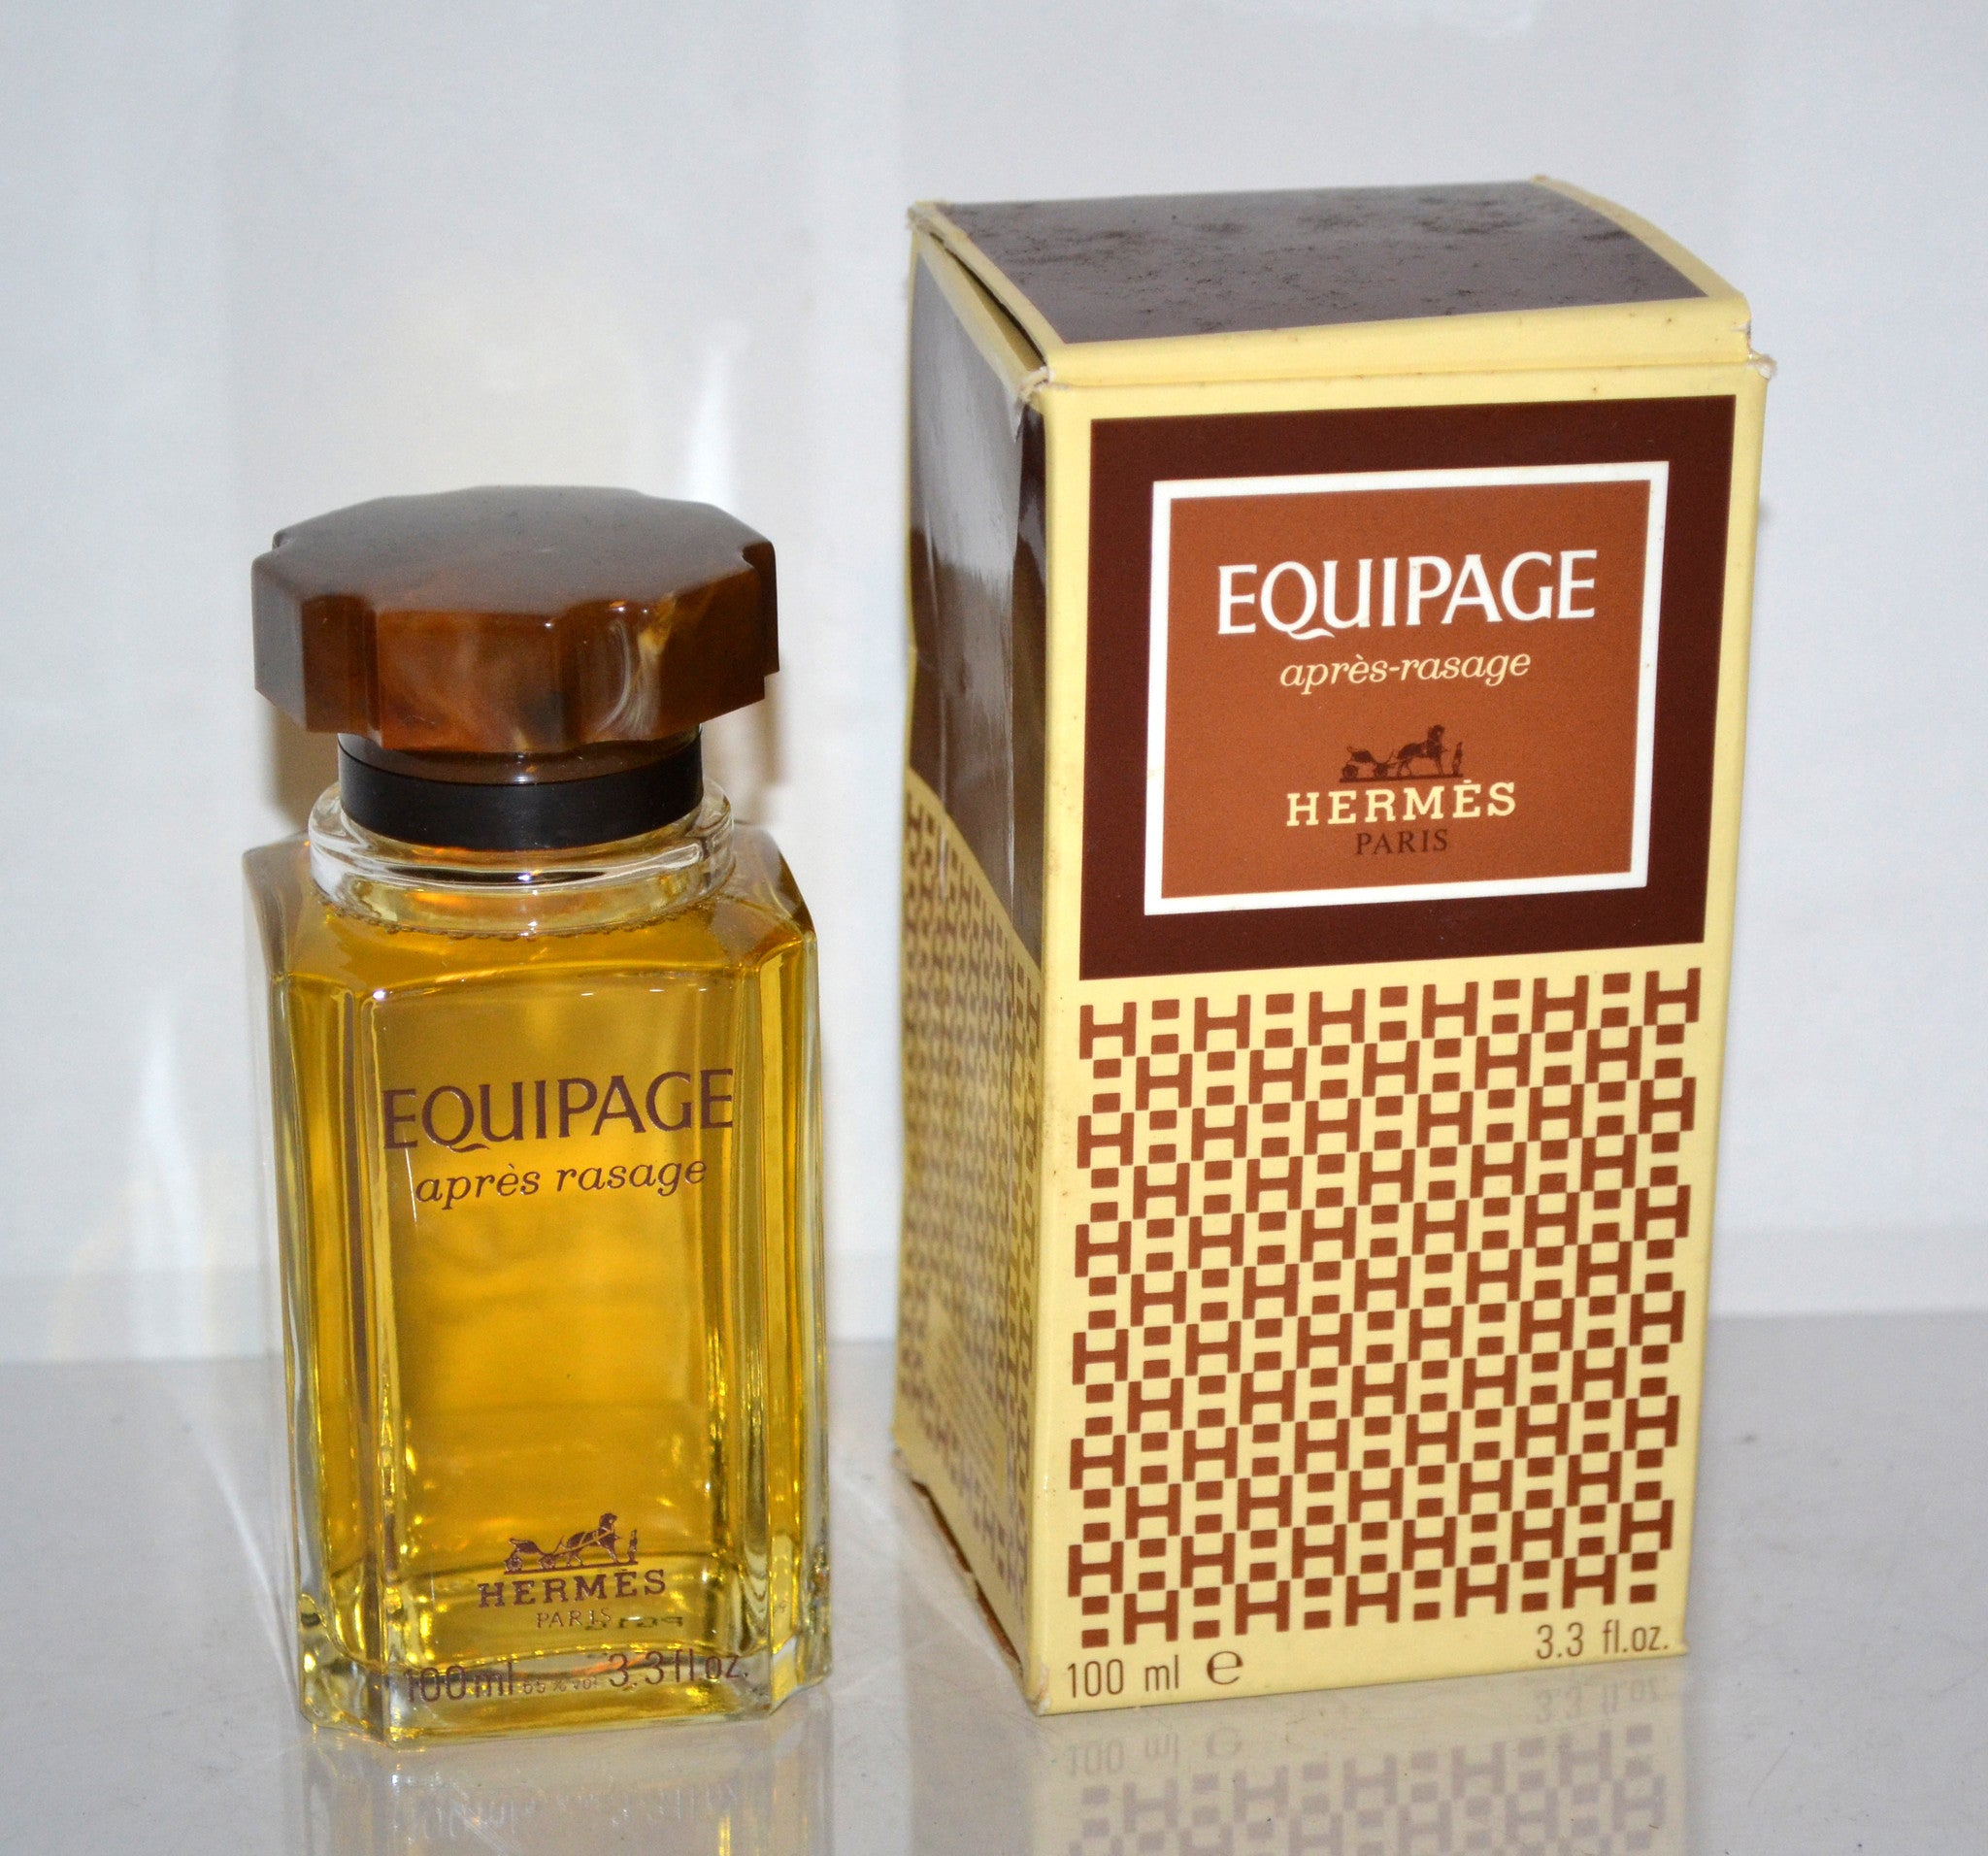 Hermes Equipage After Shave